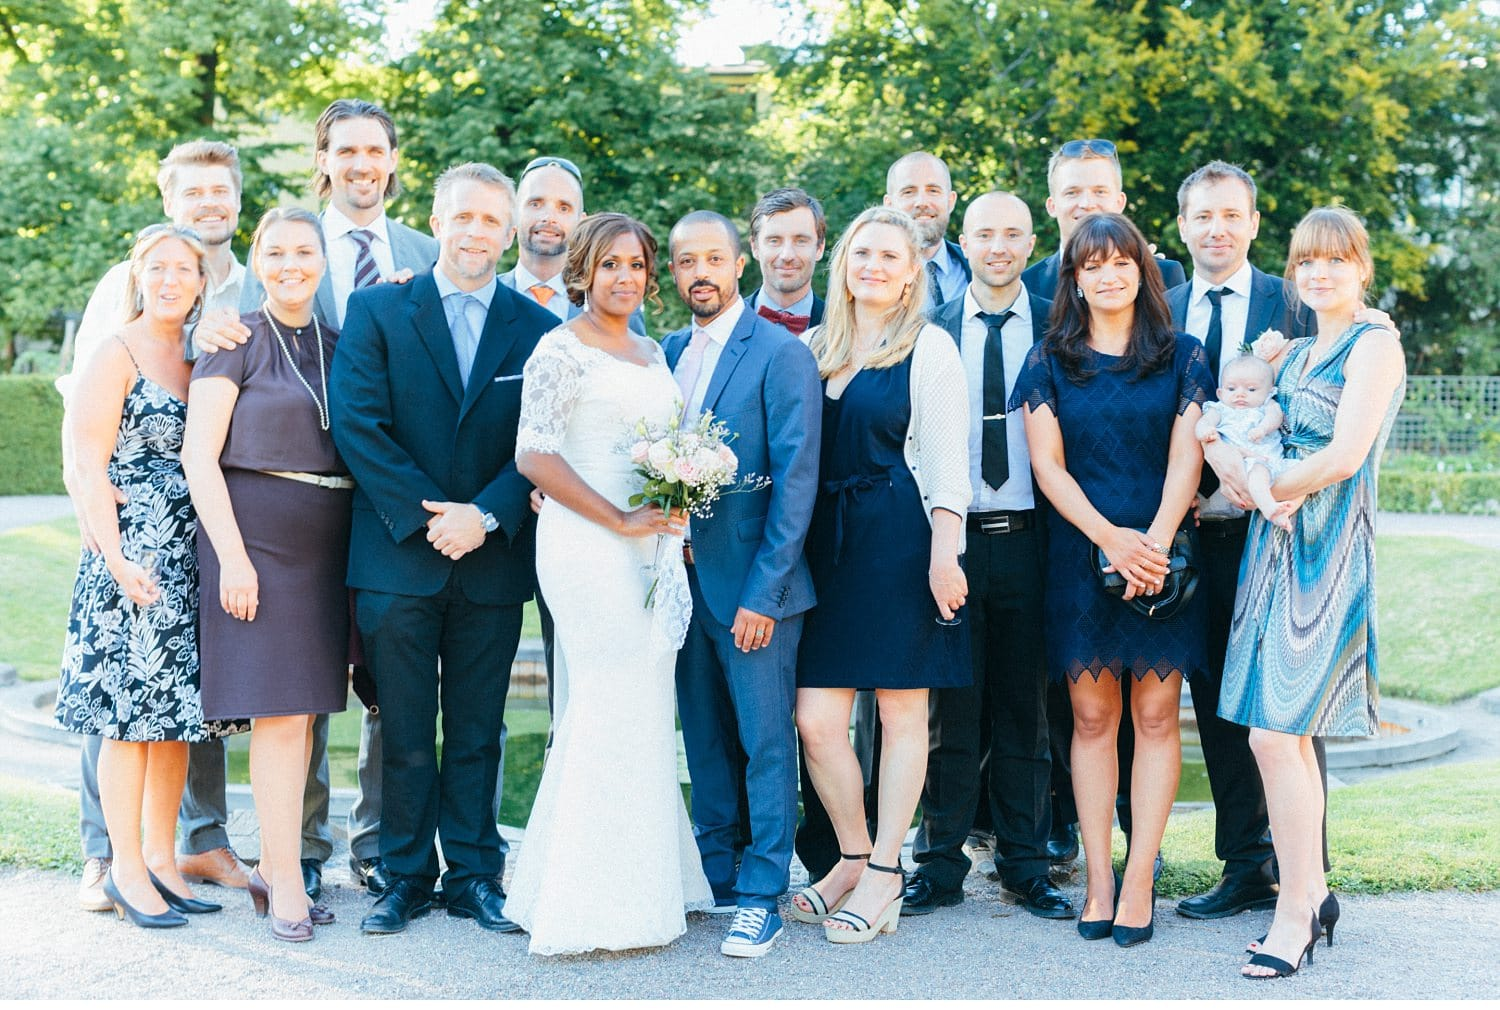 lisa kristoffer brollop uppsala wedding 84 - Lisa & Kristoffer wedding